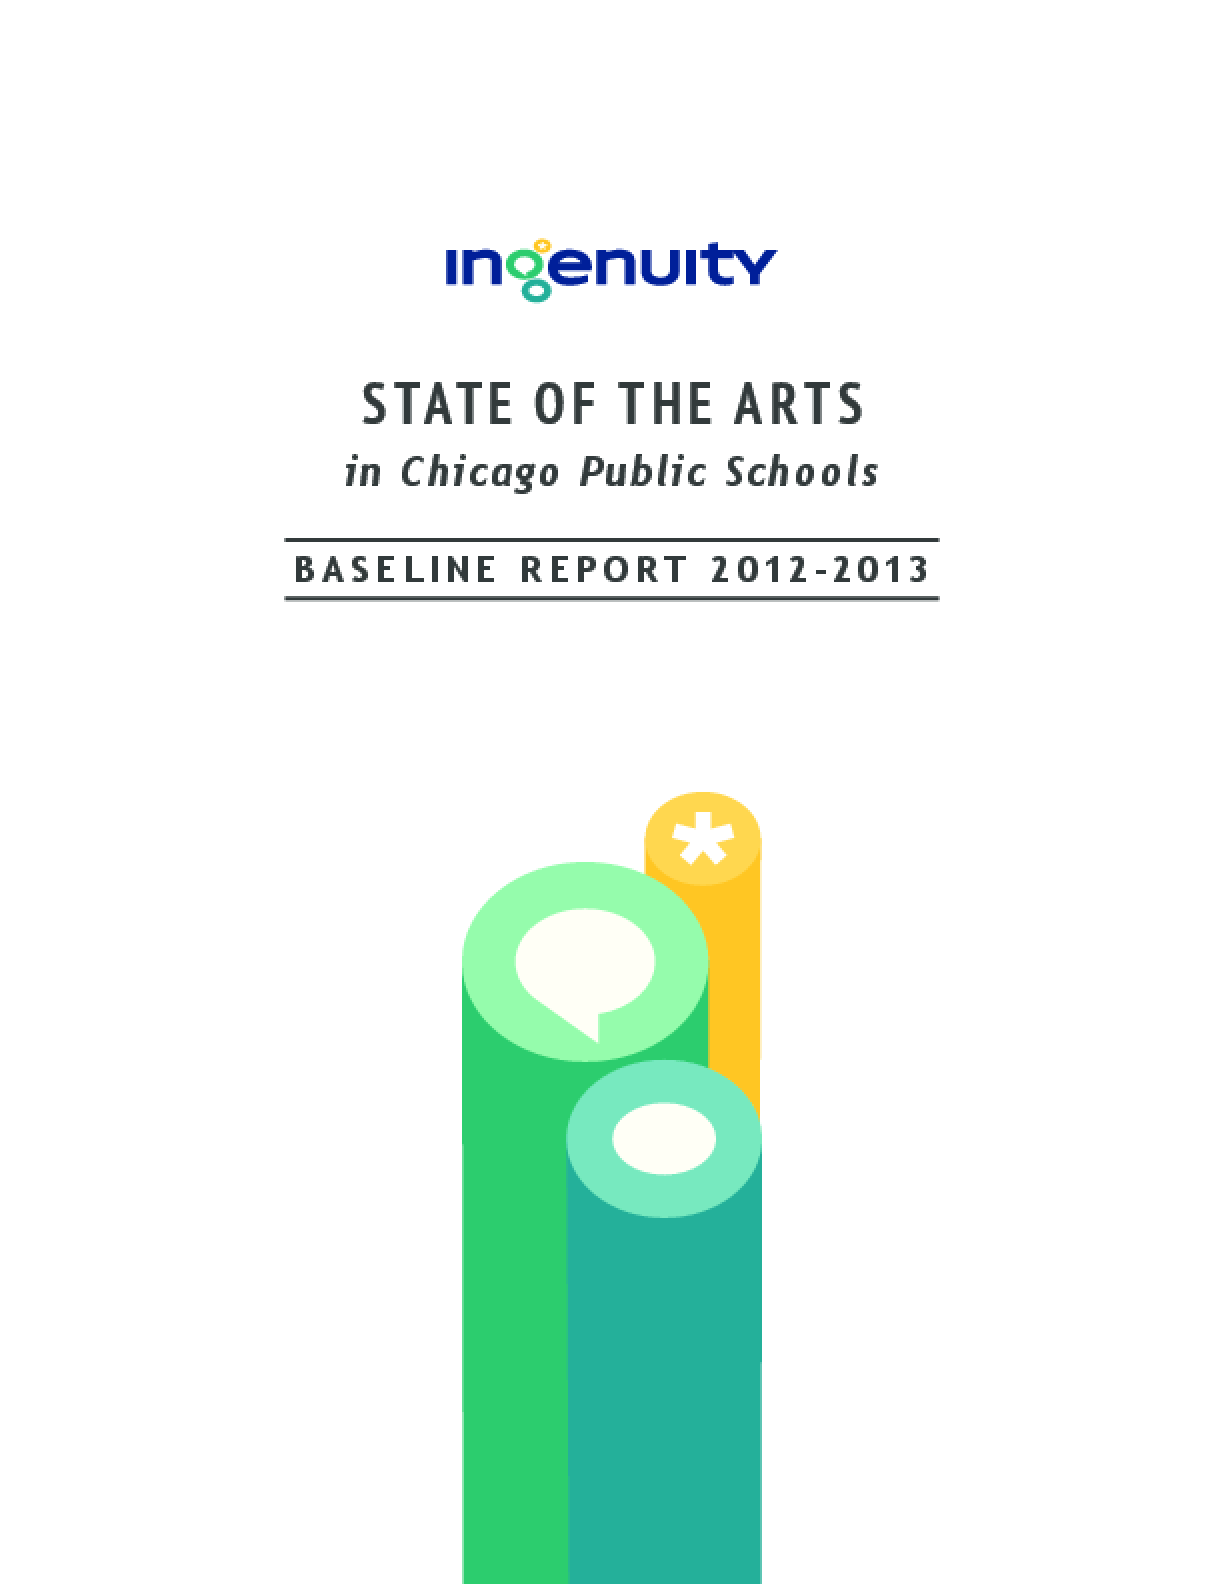 State of the Arts in Chicago Public Schools Baseline Report 2012-13